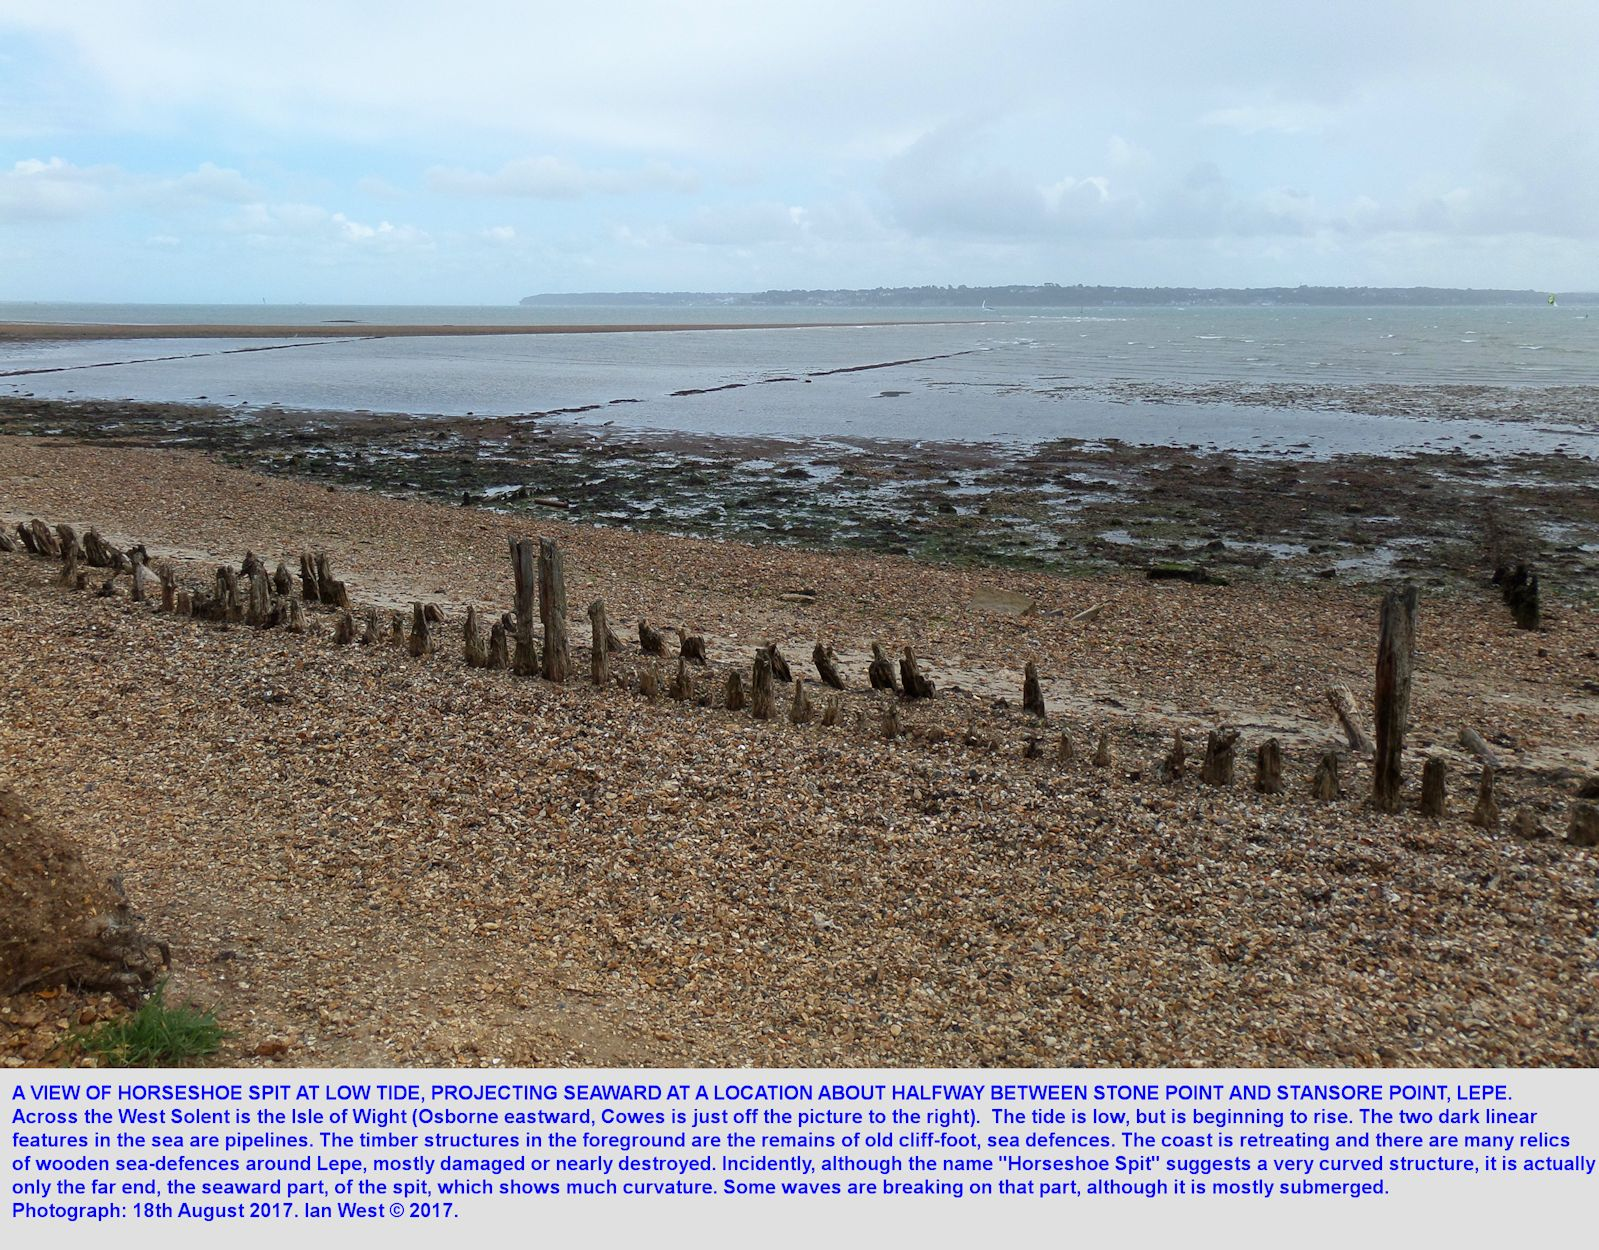 Horseshoe Spit, in the West Solent estuary near Lepe Beach, Hampshire, a transverse spit of shingle seen at a low, but rising tide, 18th August 2017